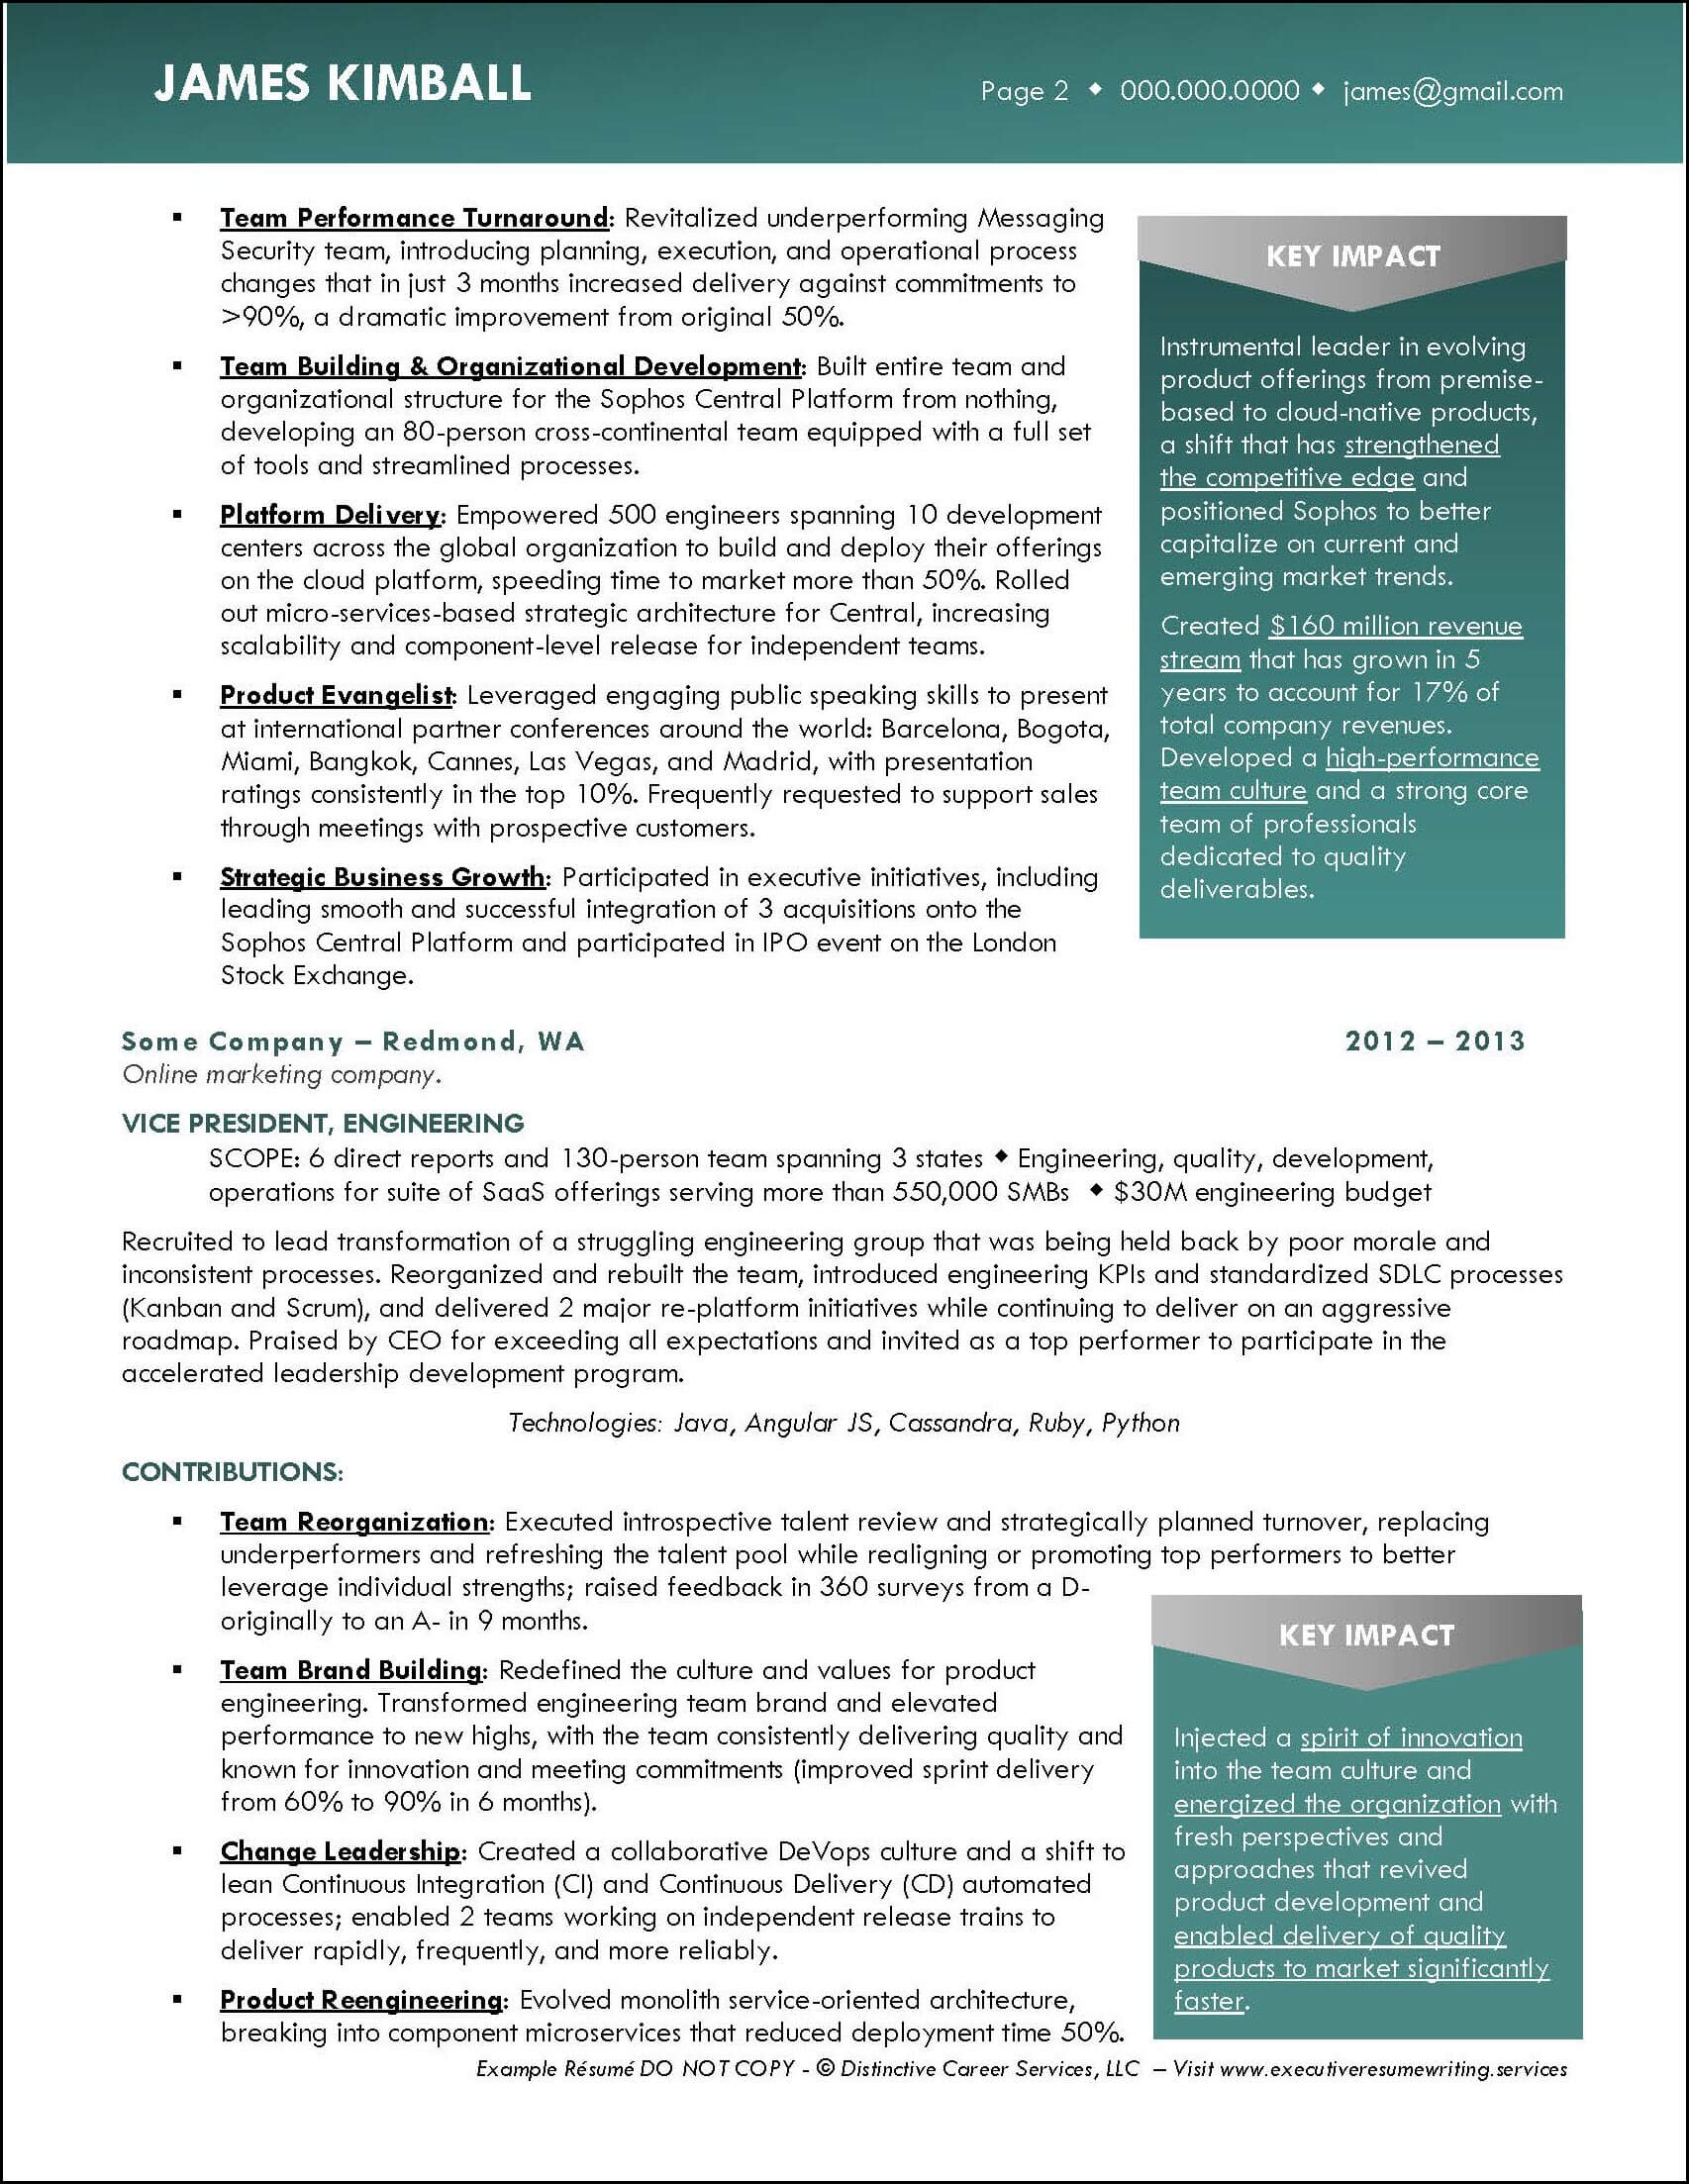 Example Product Engineering Executive Resume pg 2